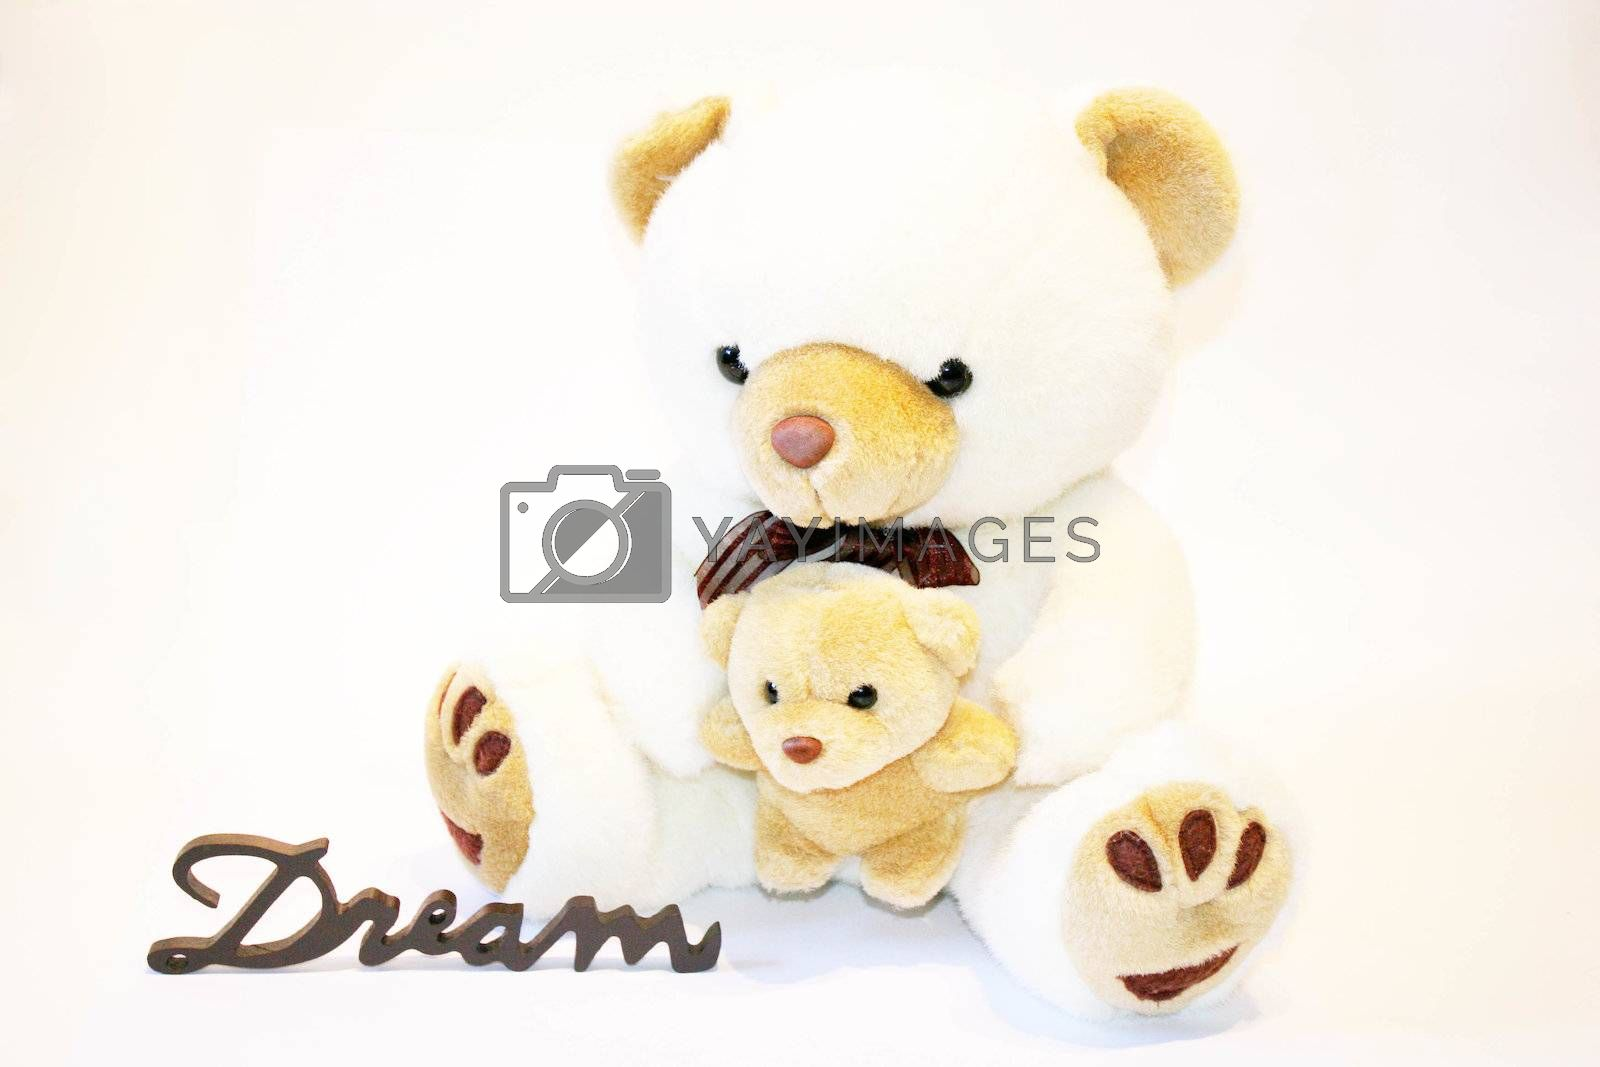 Cute teddy bear sitting on a white background whit the word dream